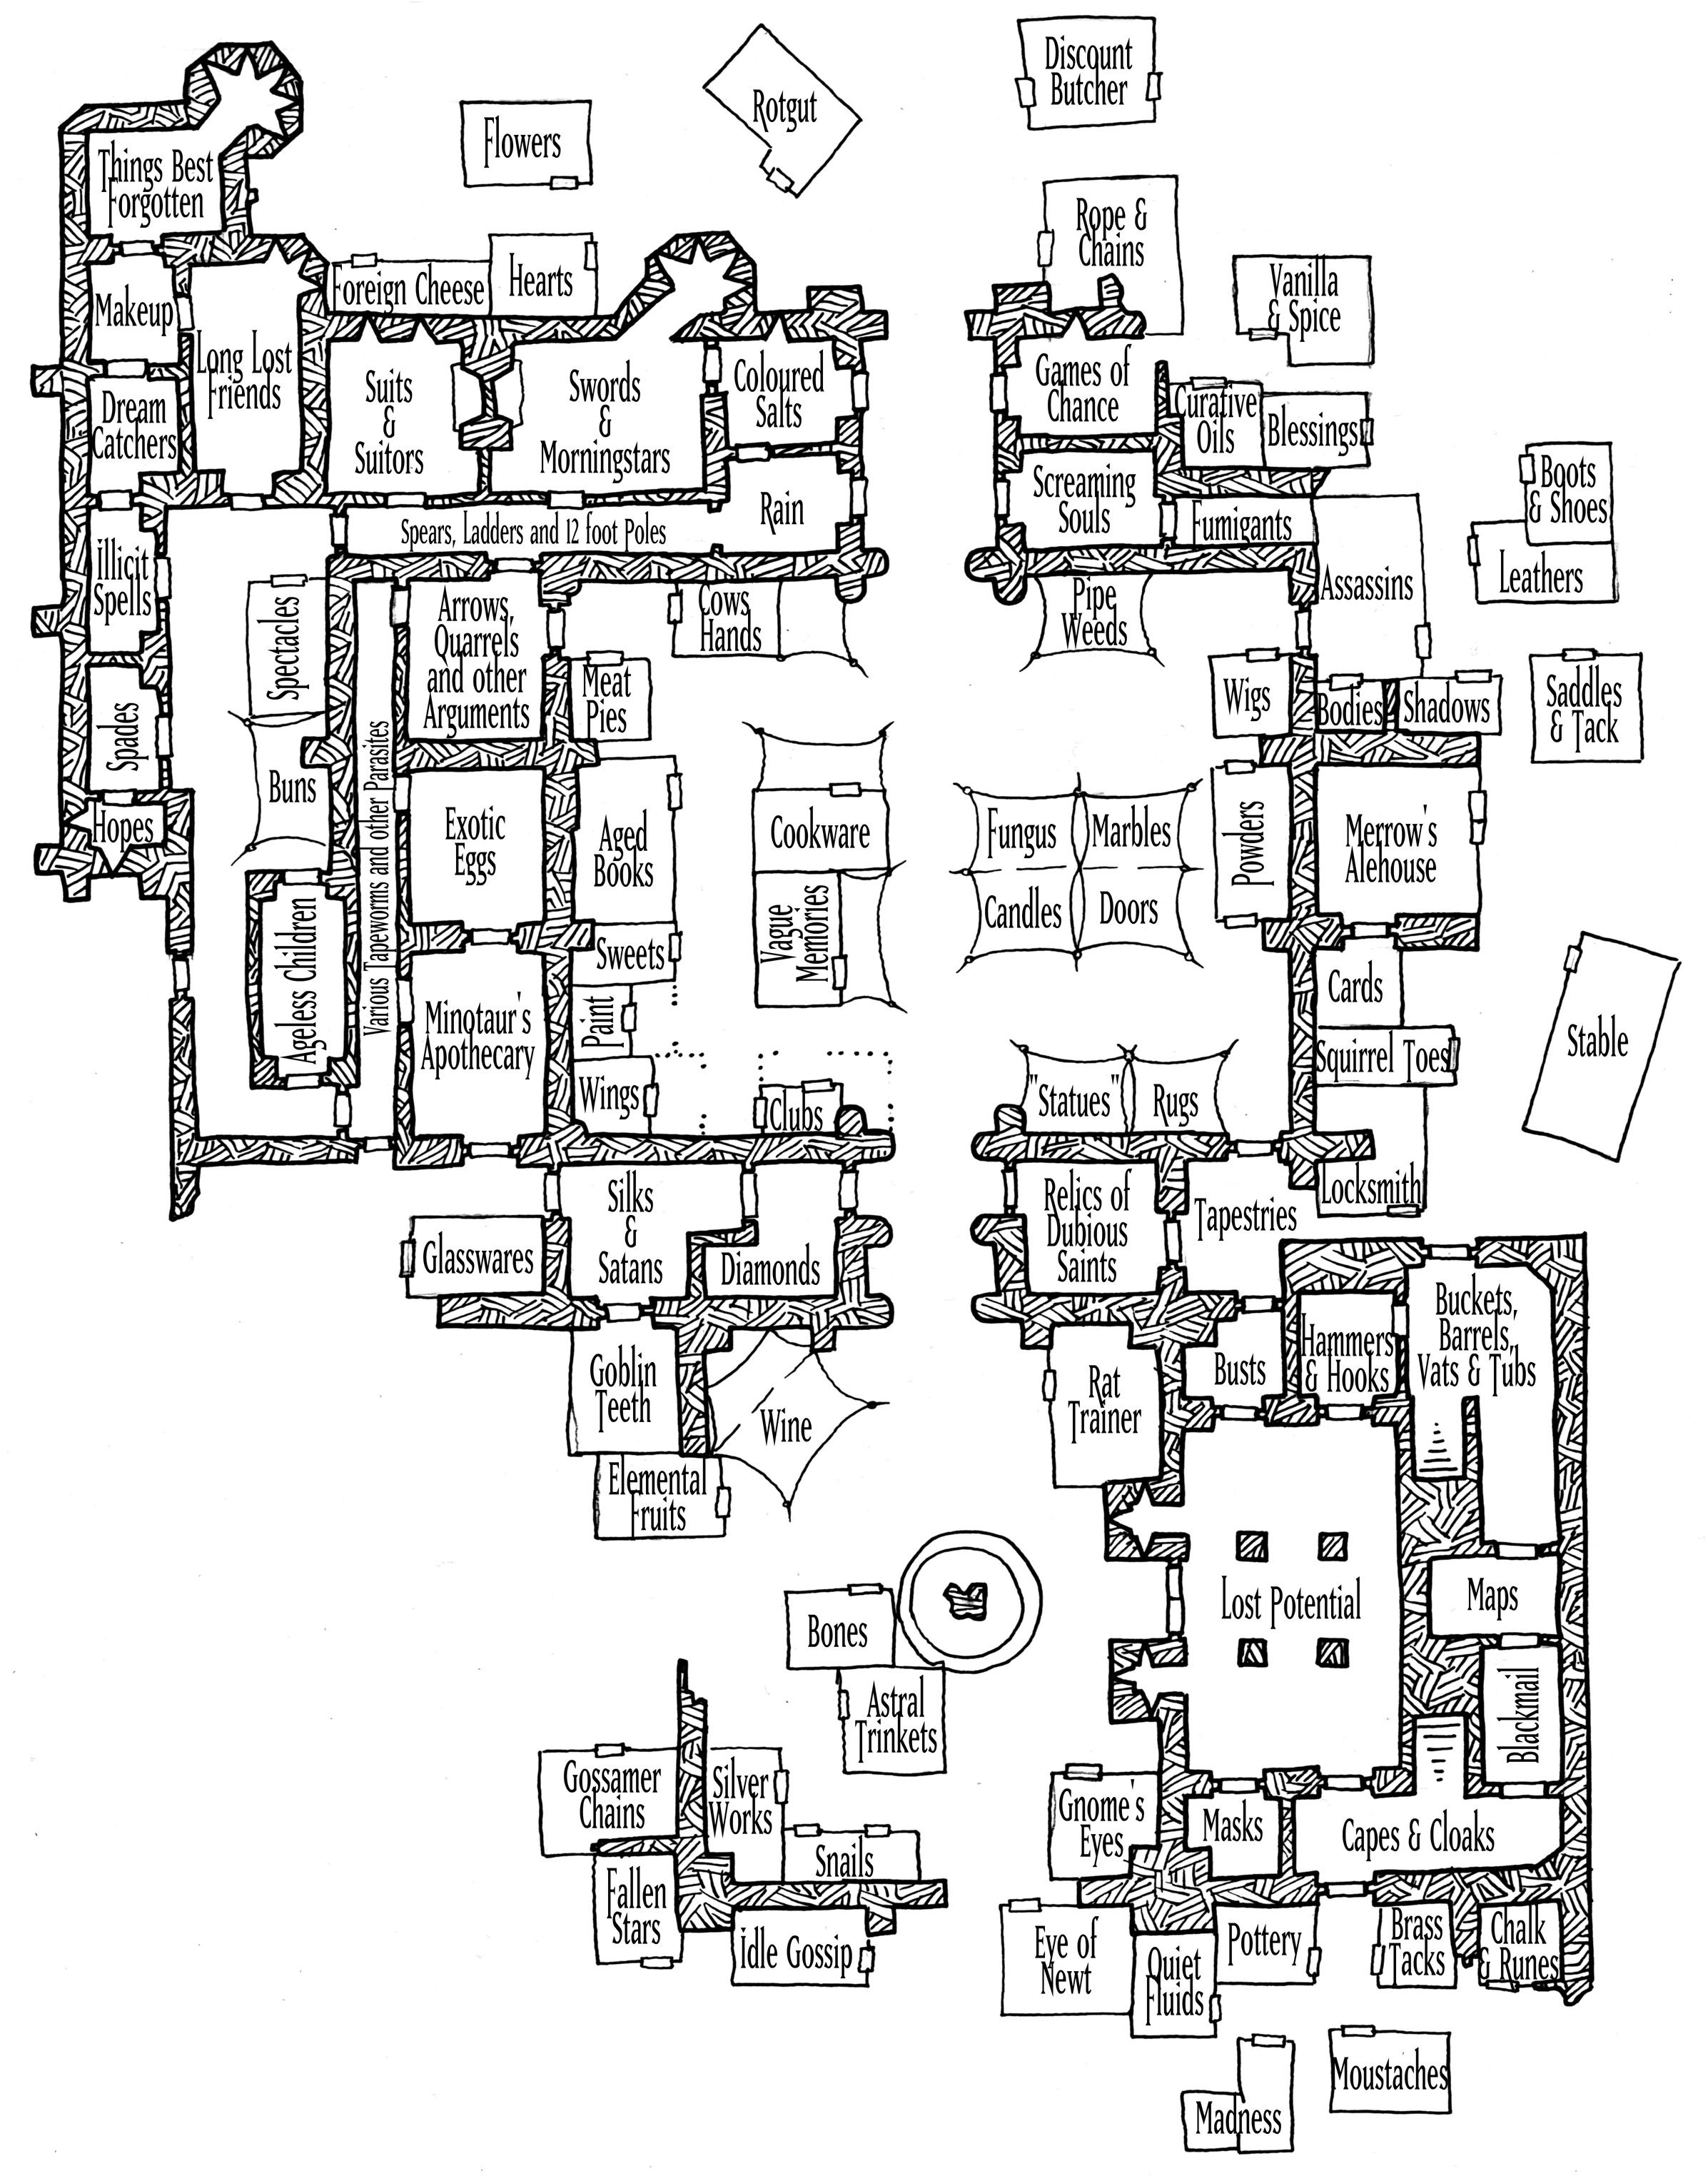 Tuesday Map] The Palace Market | Palace, RPG and Fantasy map